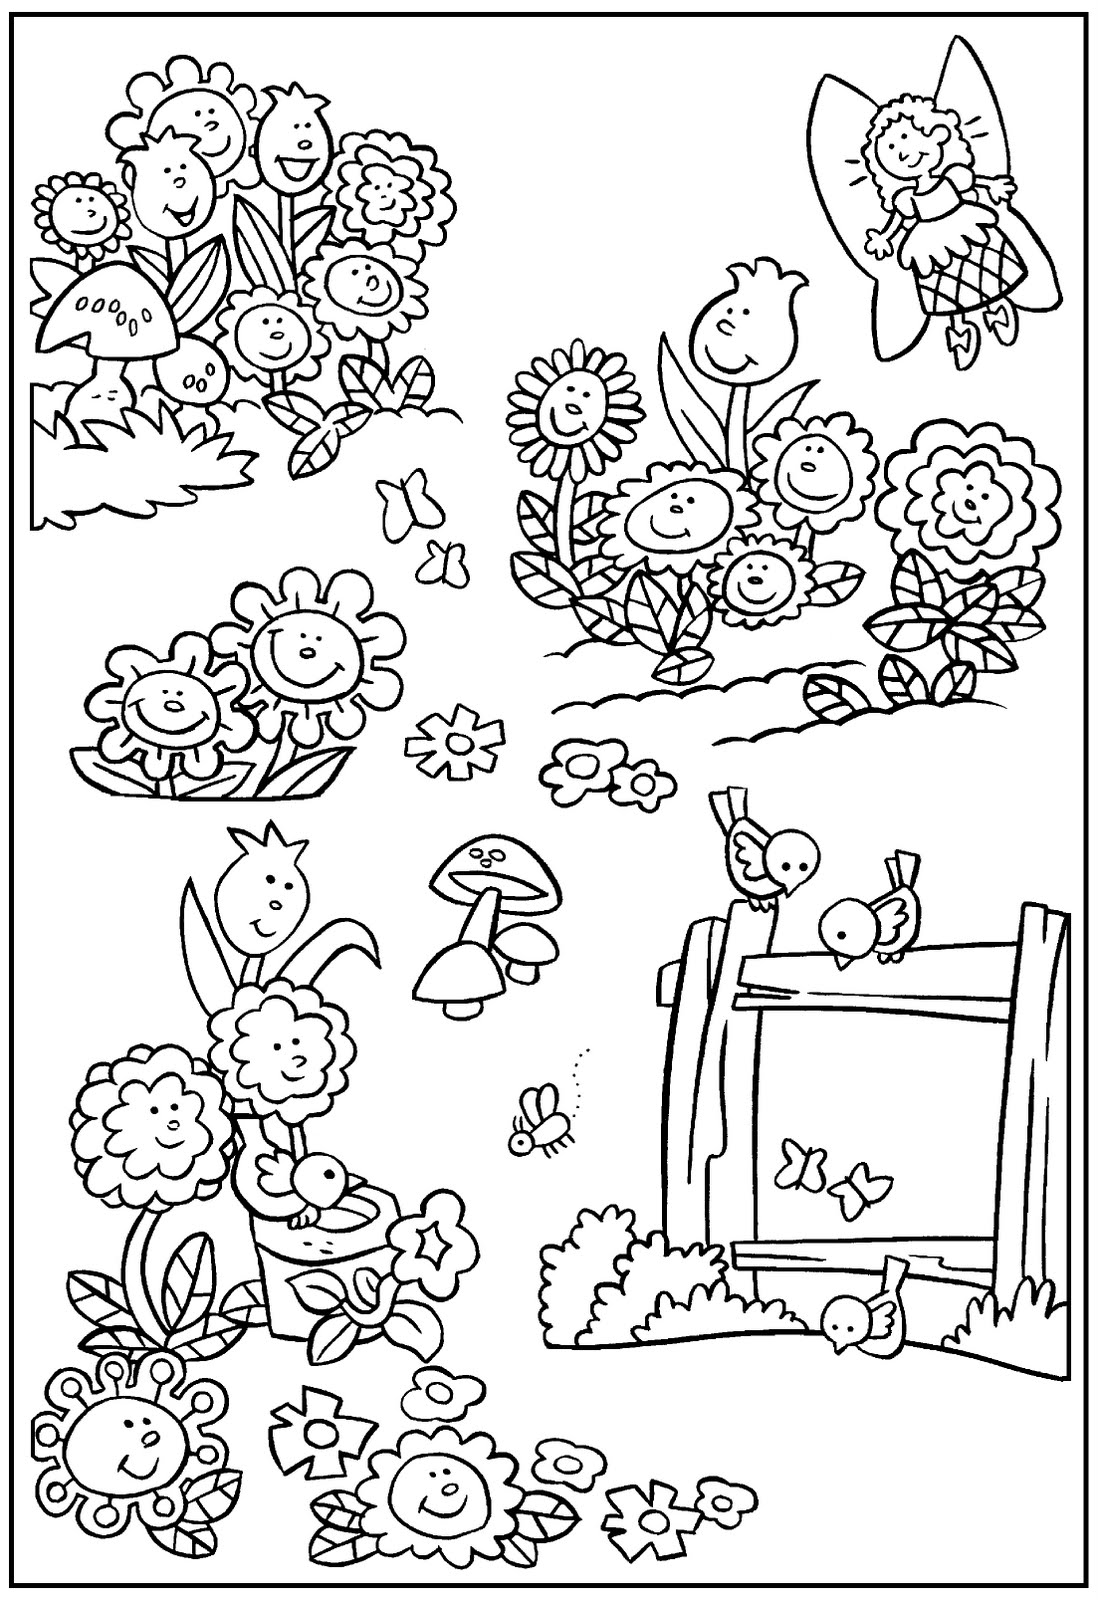 Printable Fairy With Flowers Garden coloring page for both aldults ...